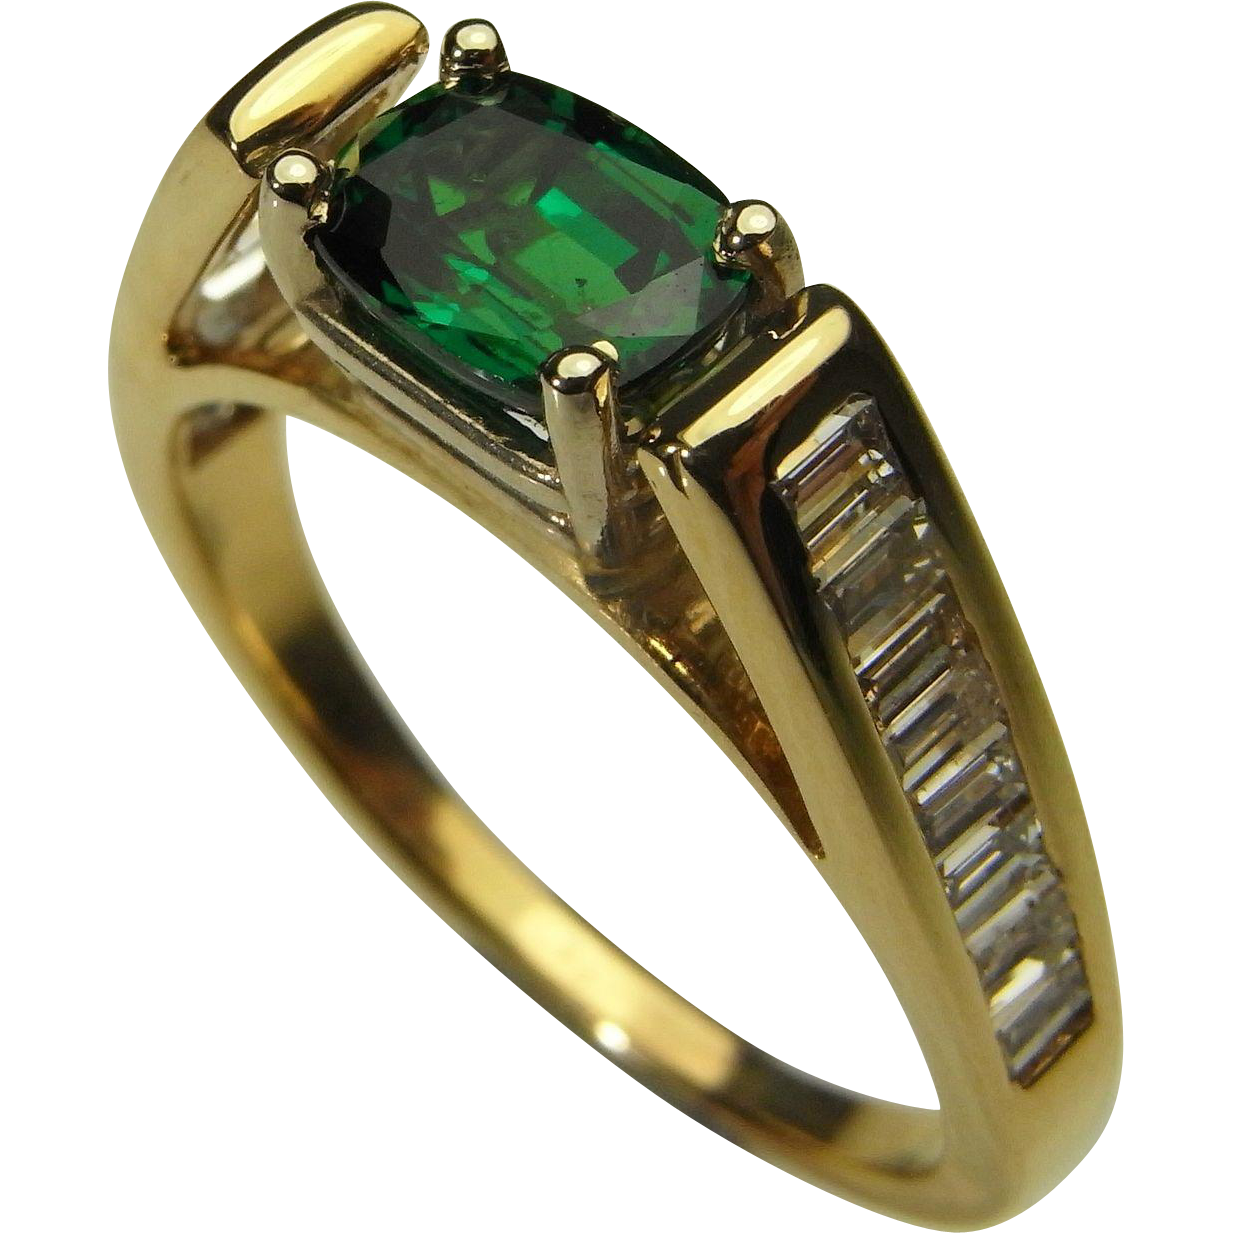 ct featuring gold with pin exquisite a garnet peridots tsavorite yellow ring accented this rings